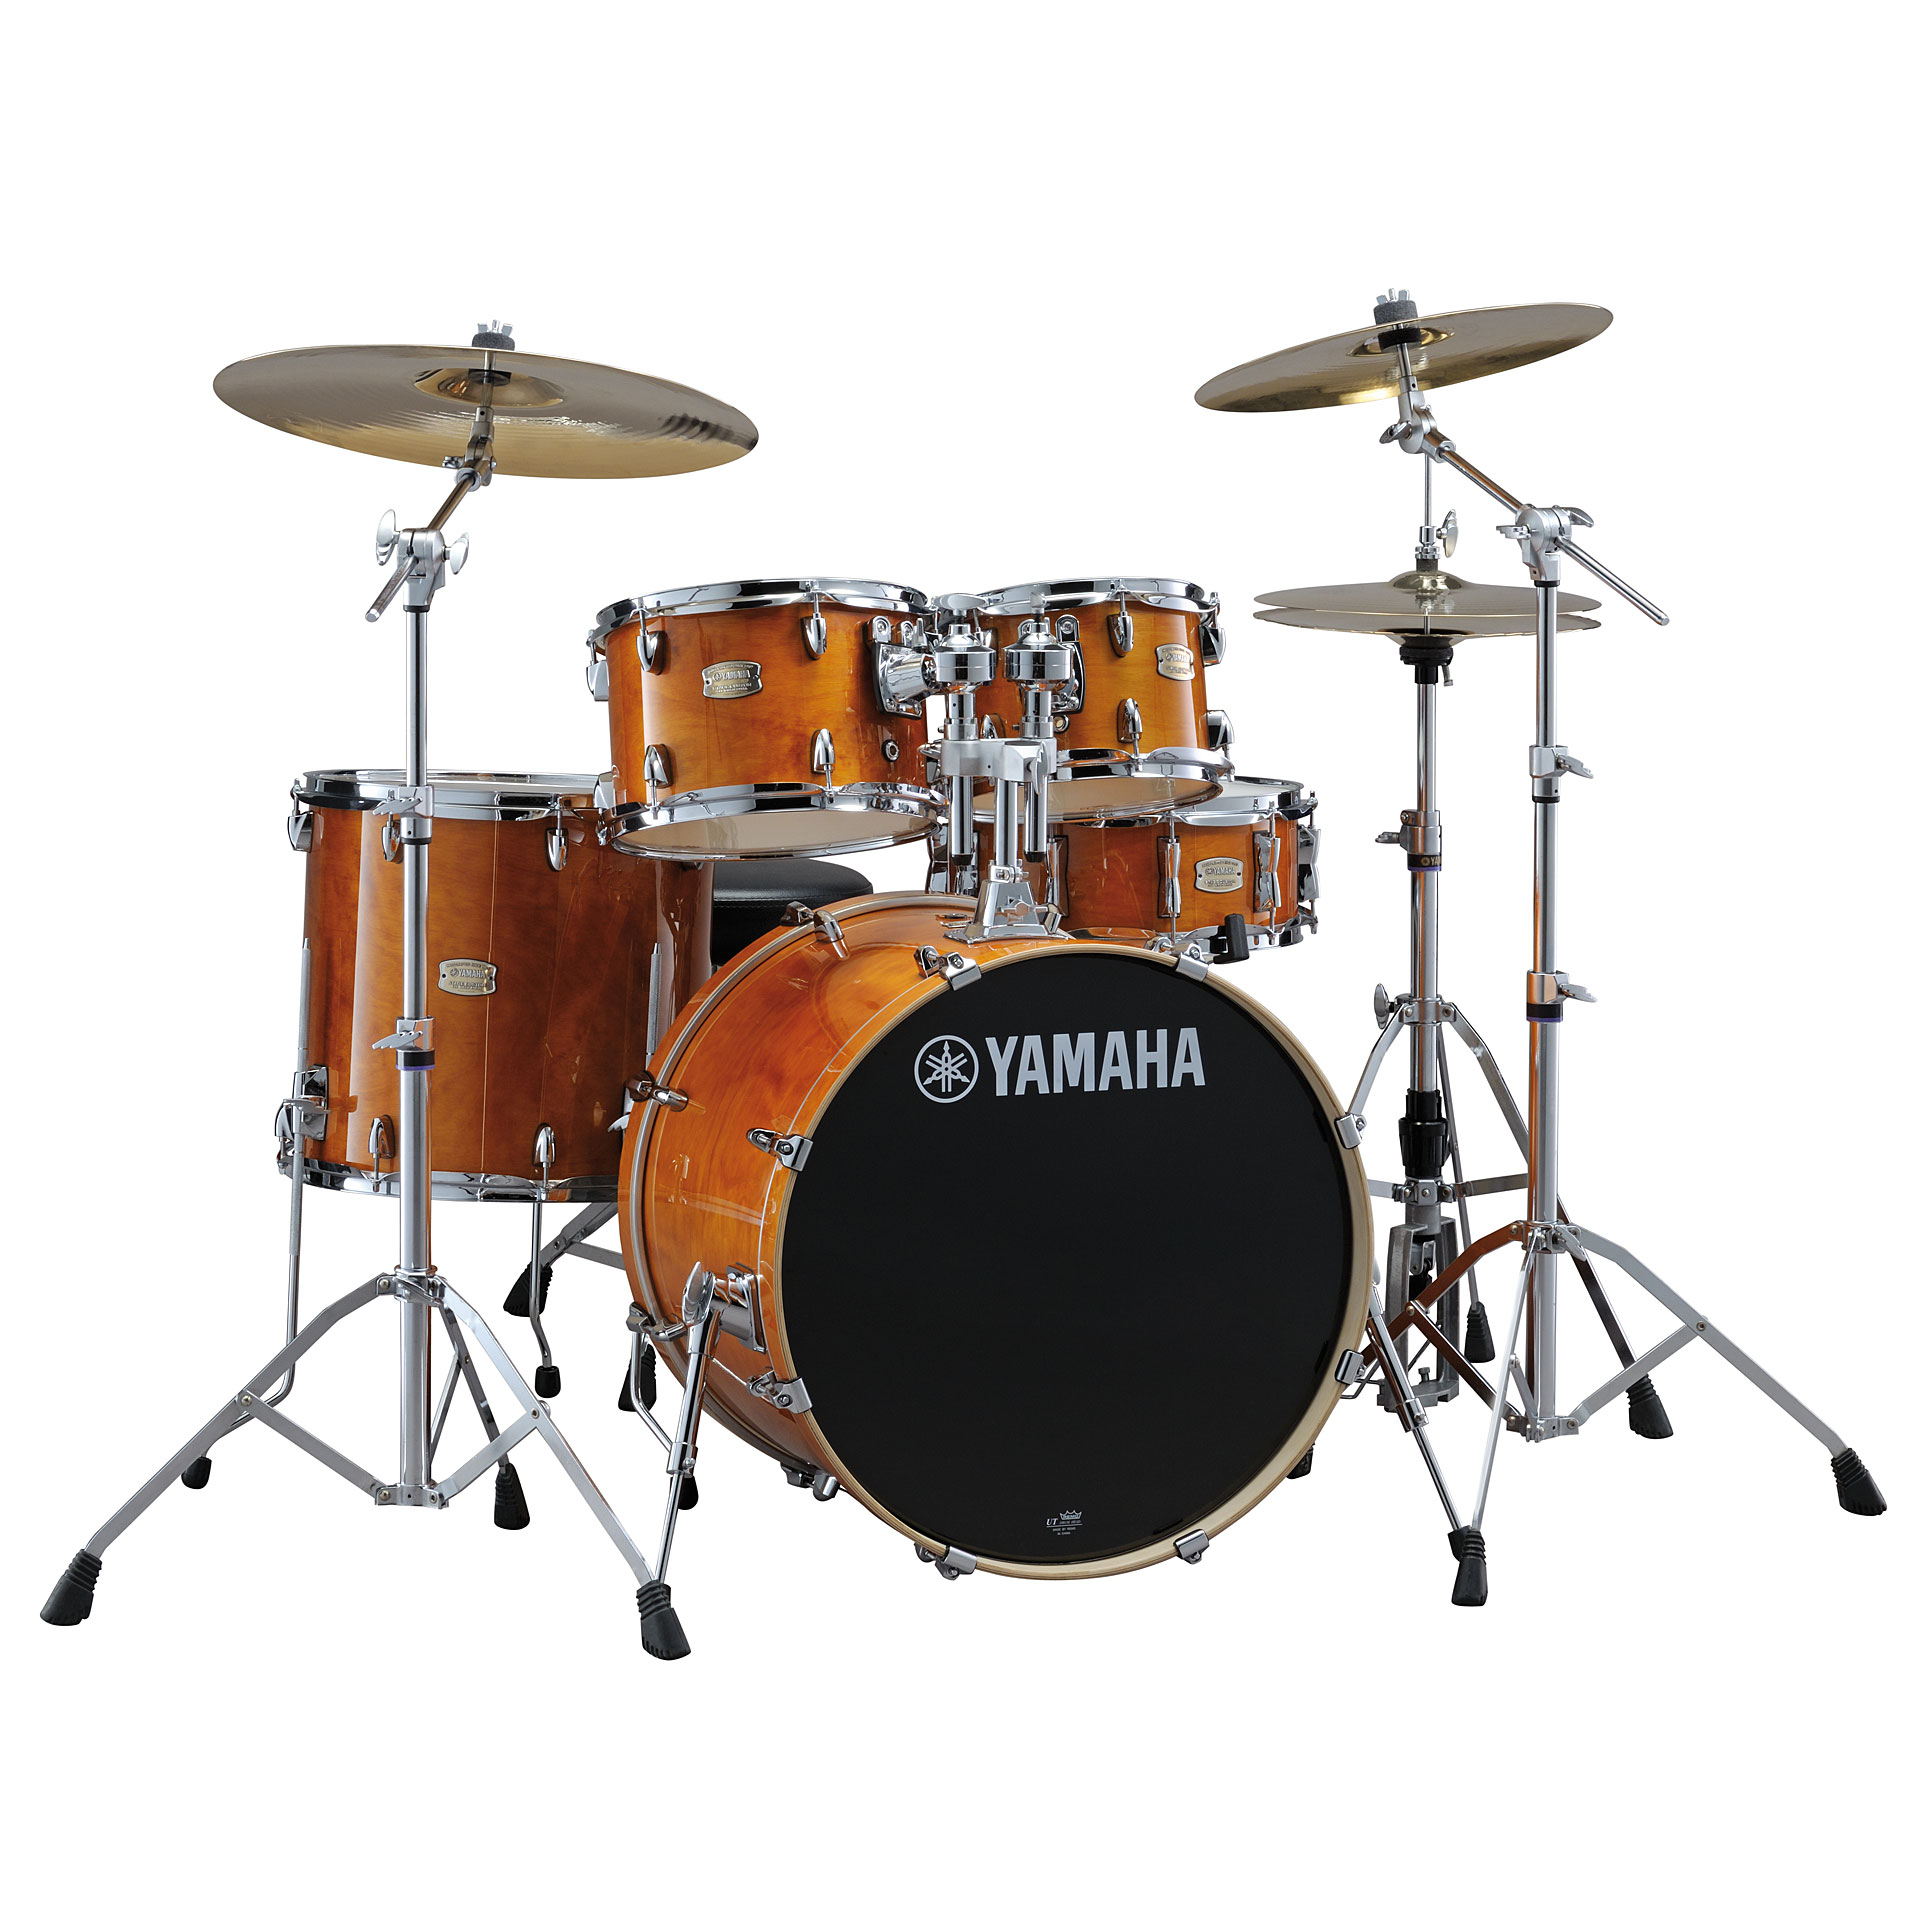 Yamaha Birch Drums